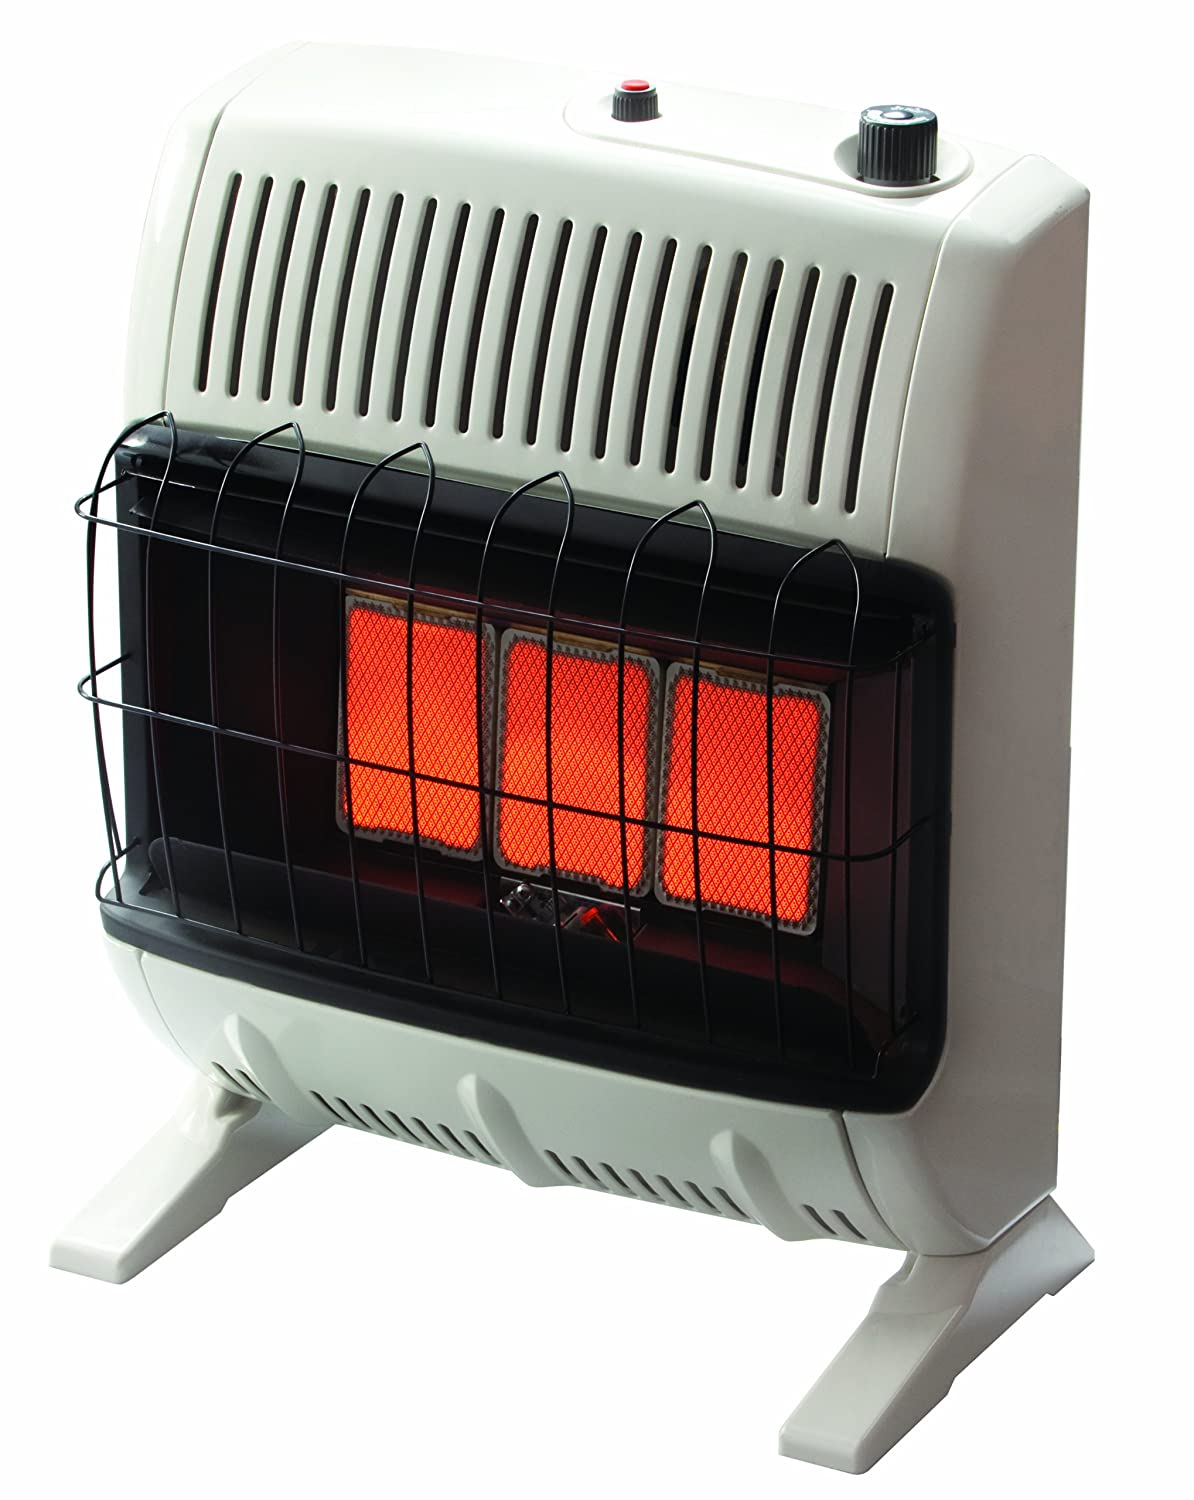 Heatstar Same day shipping By Translated Enerco F156040 Ventfree Natural Gas Infrared Heater